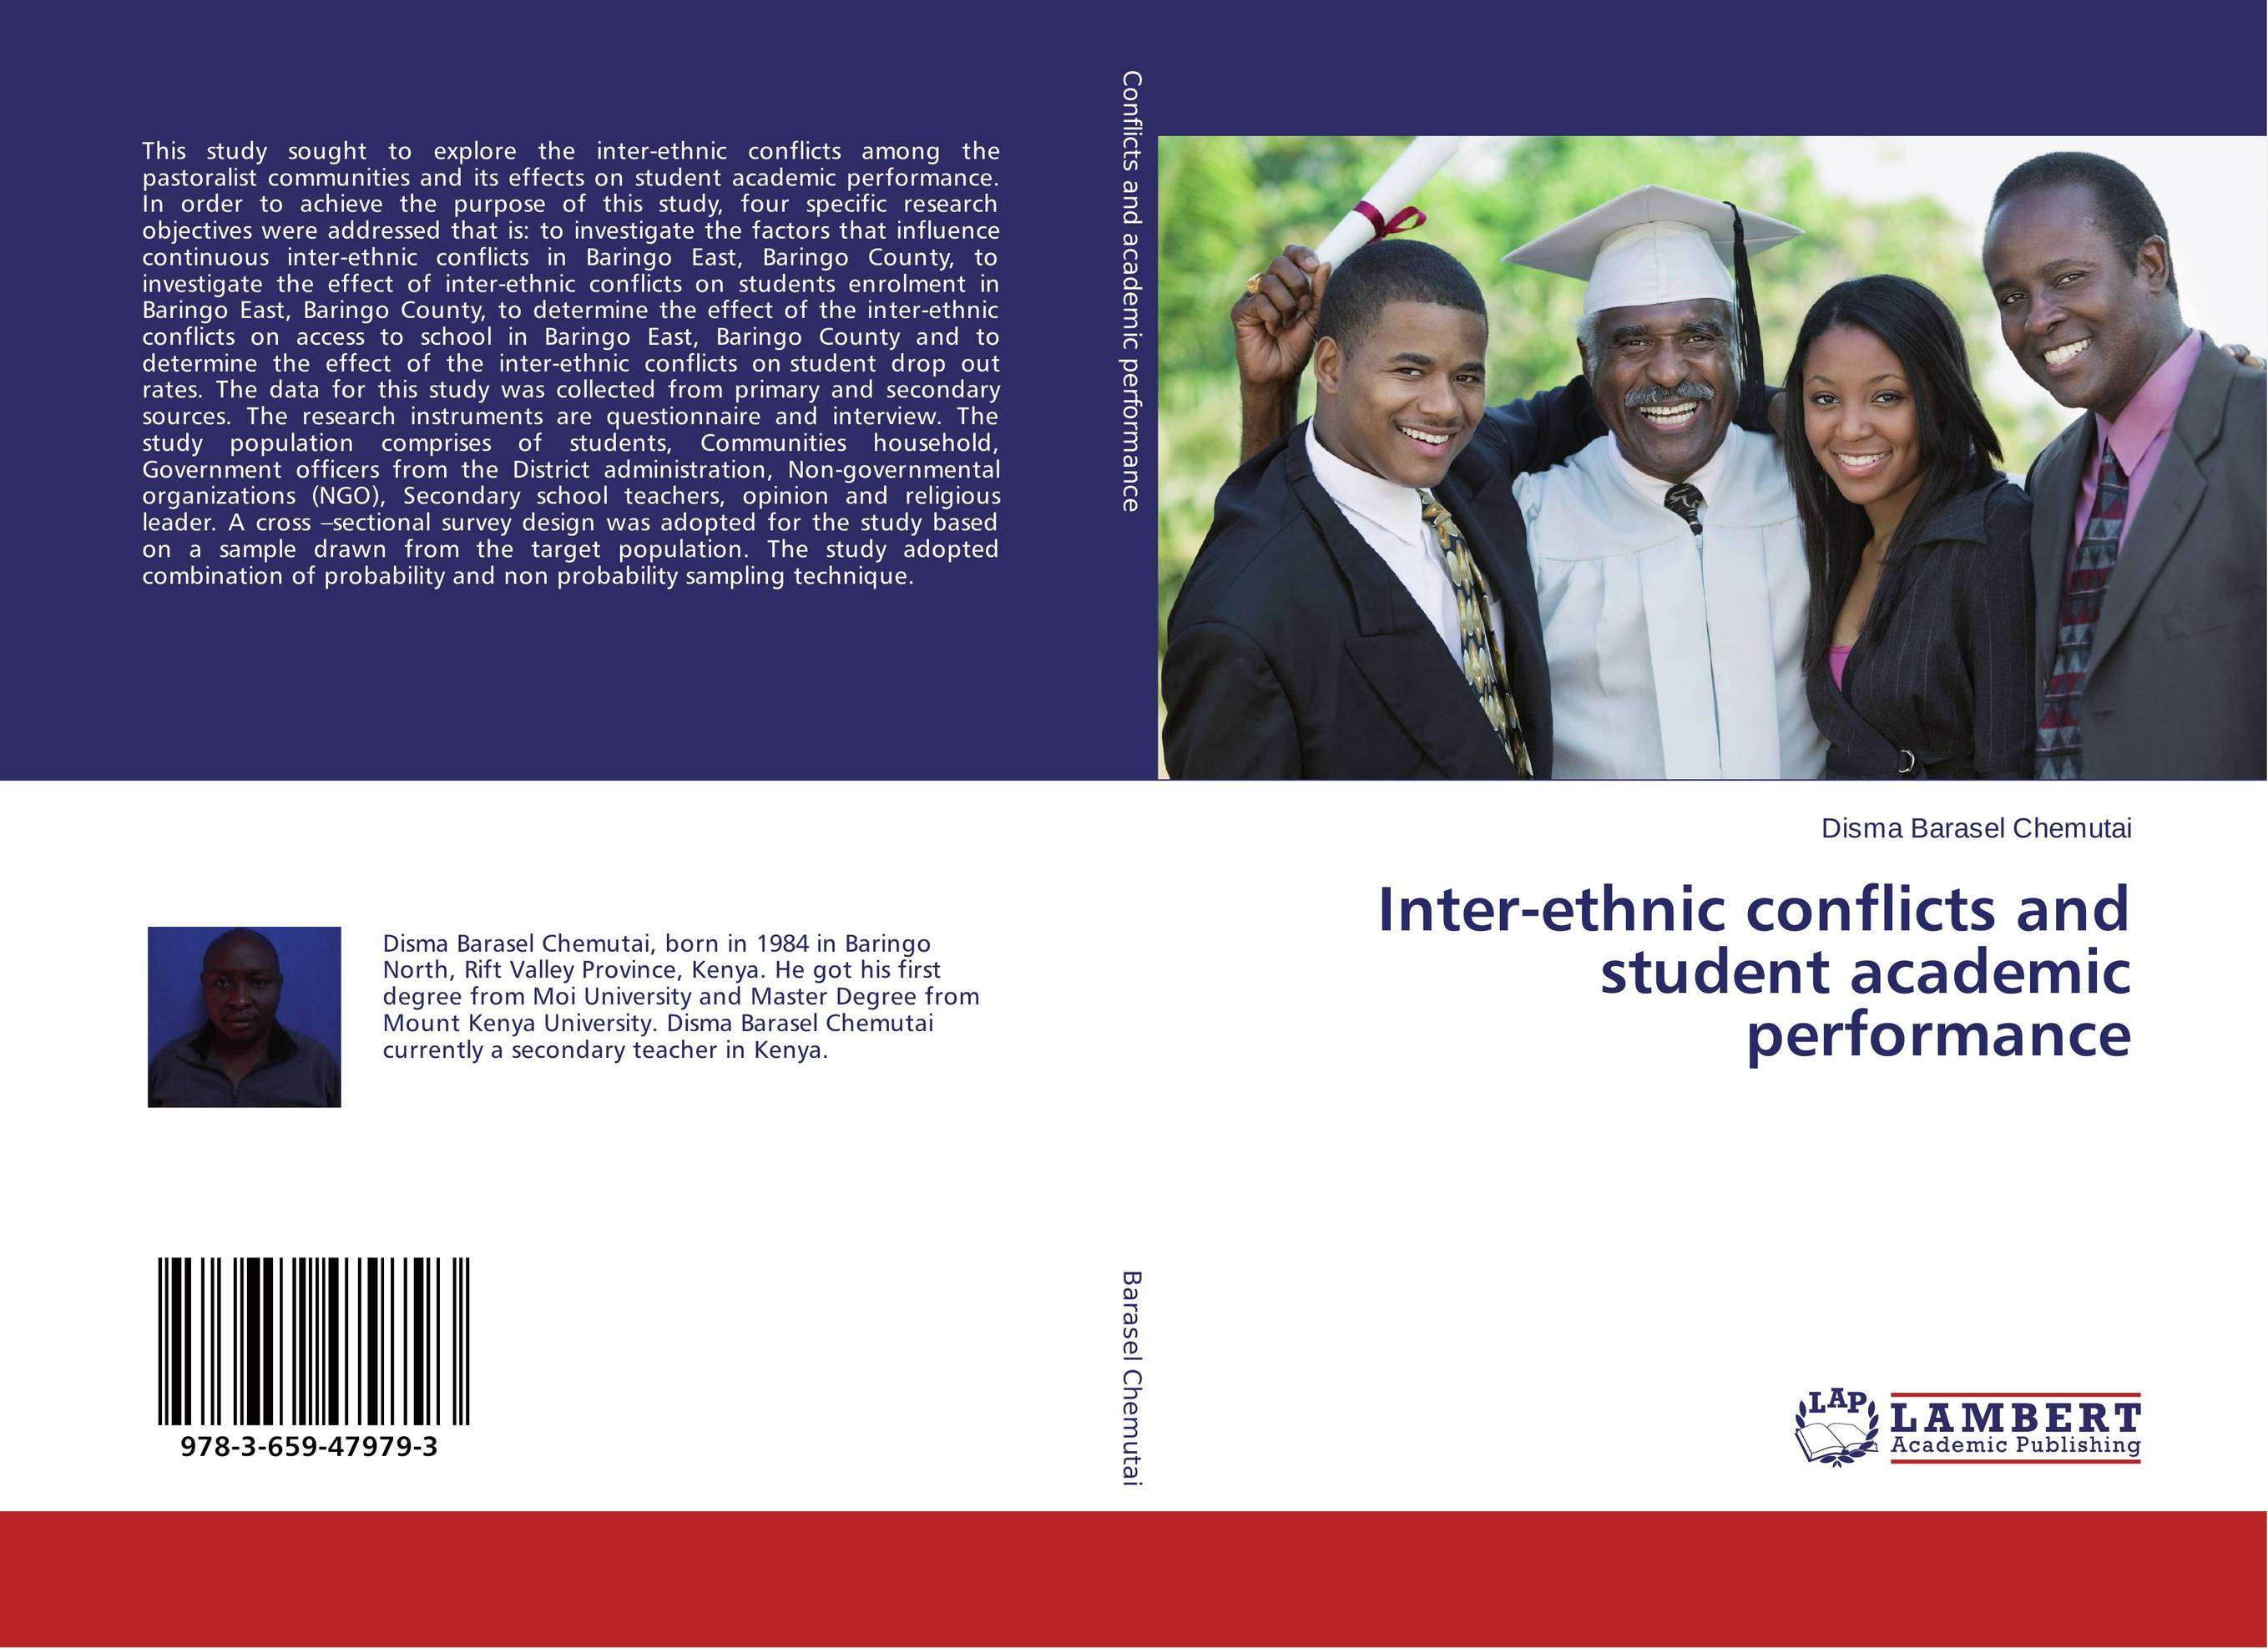 Inter-ethnic conflicts and student academic performance the effect of prices and political unity on inter state gas bargaining